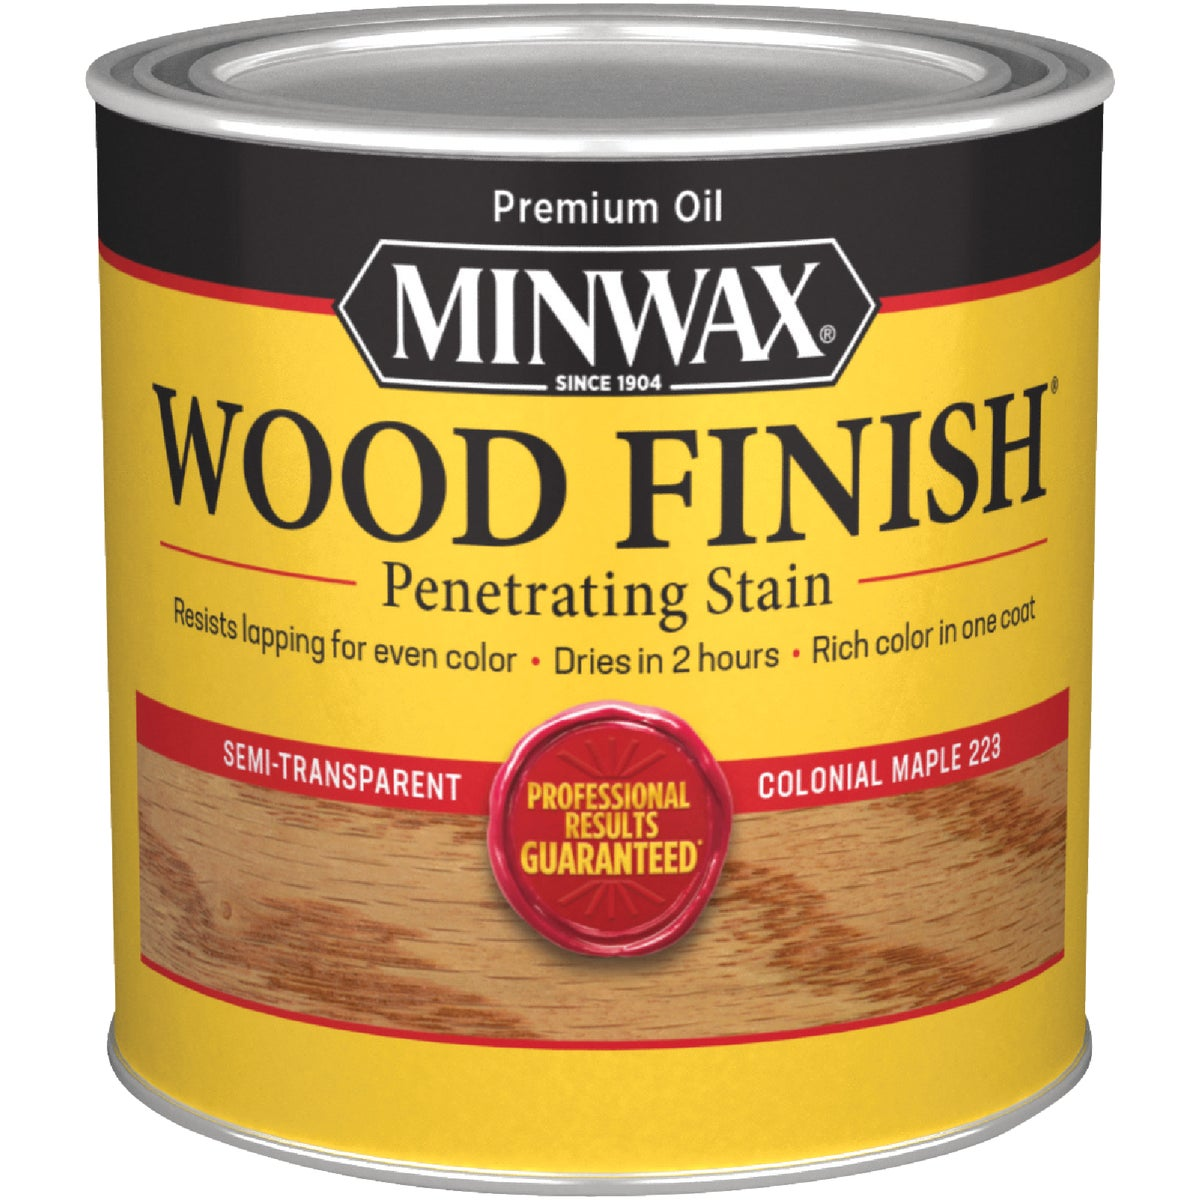 COLNL MAPLE WOOD STAIN - 222304444 by Minwax Company